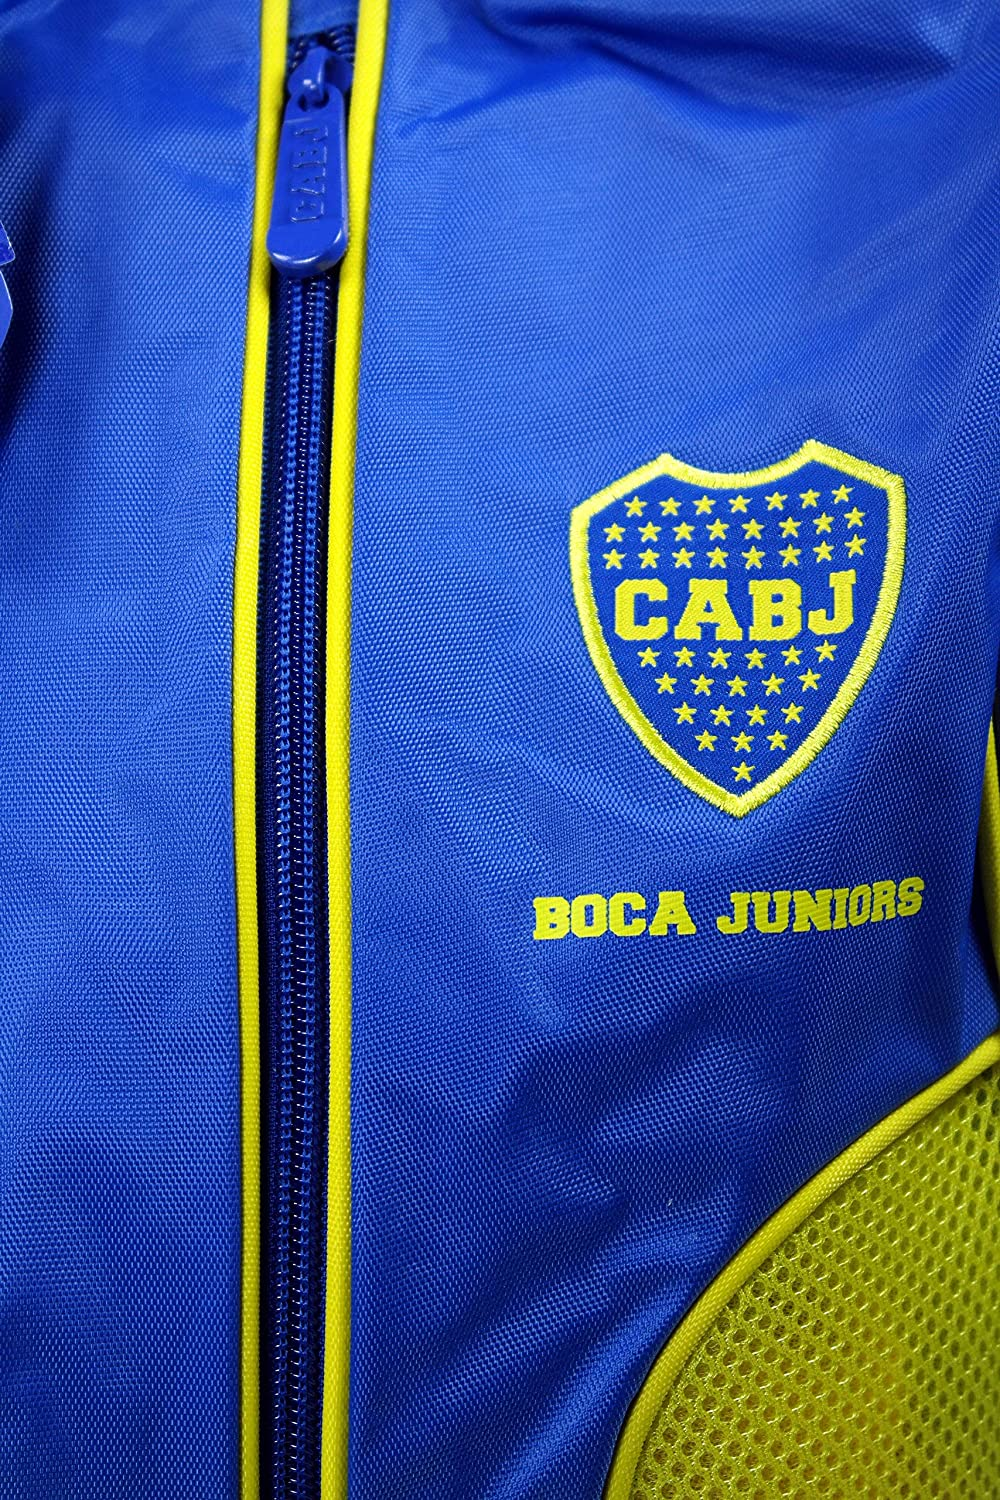 aa656fb116f Boca Juniors CABJ Authentic Official Licensed Product Soccer Bag - 001   Amazon.co.uk  Sports   Outdoors